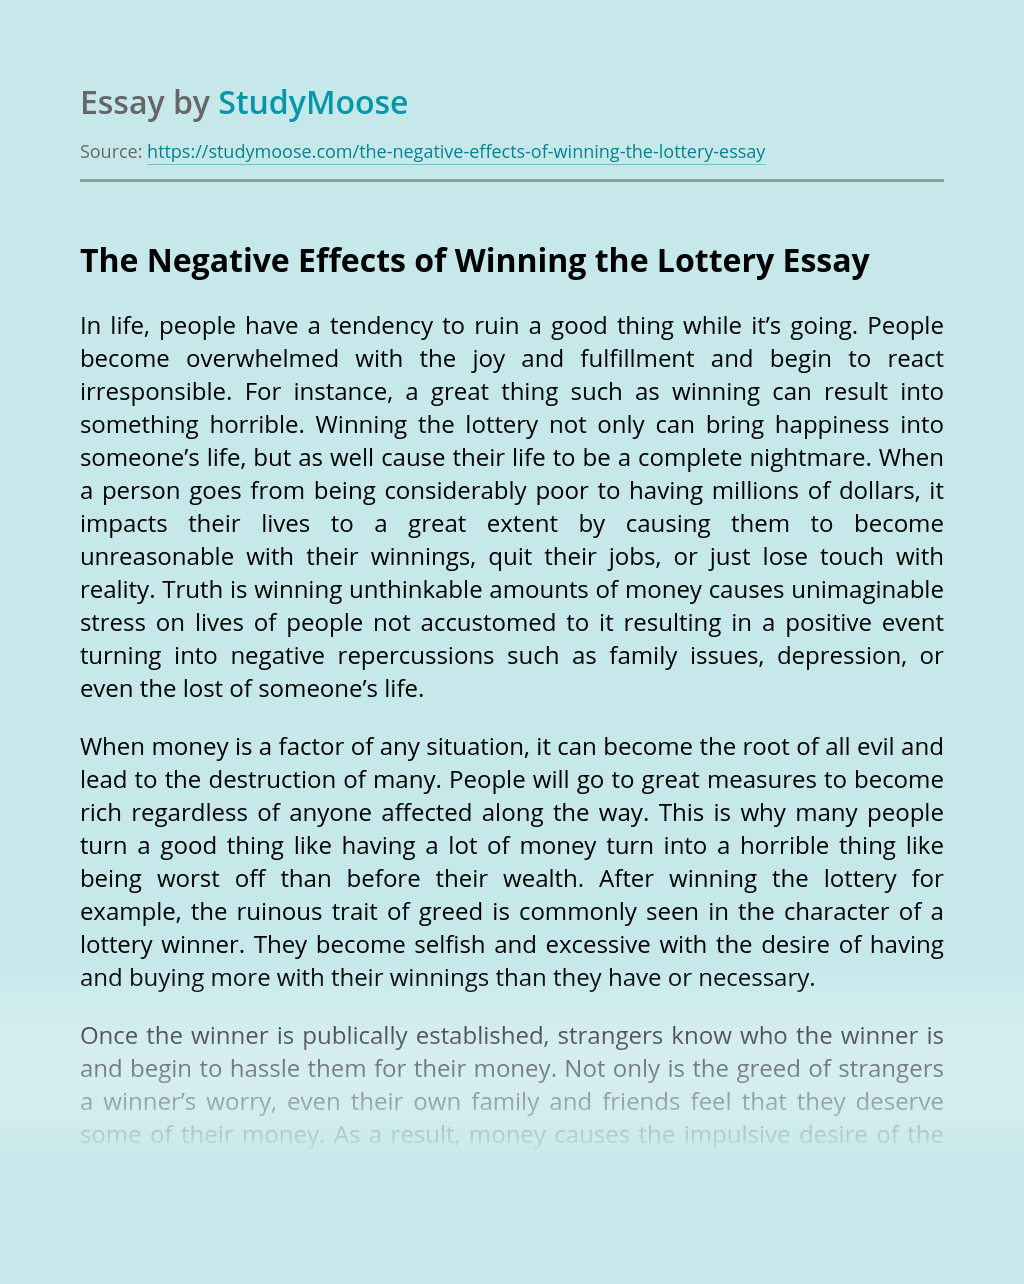 The Negative Effects of Winning the Lottery